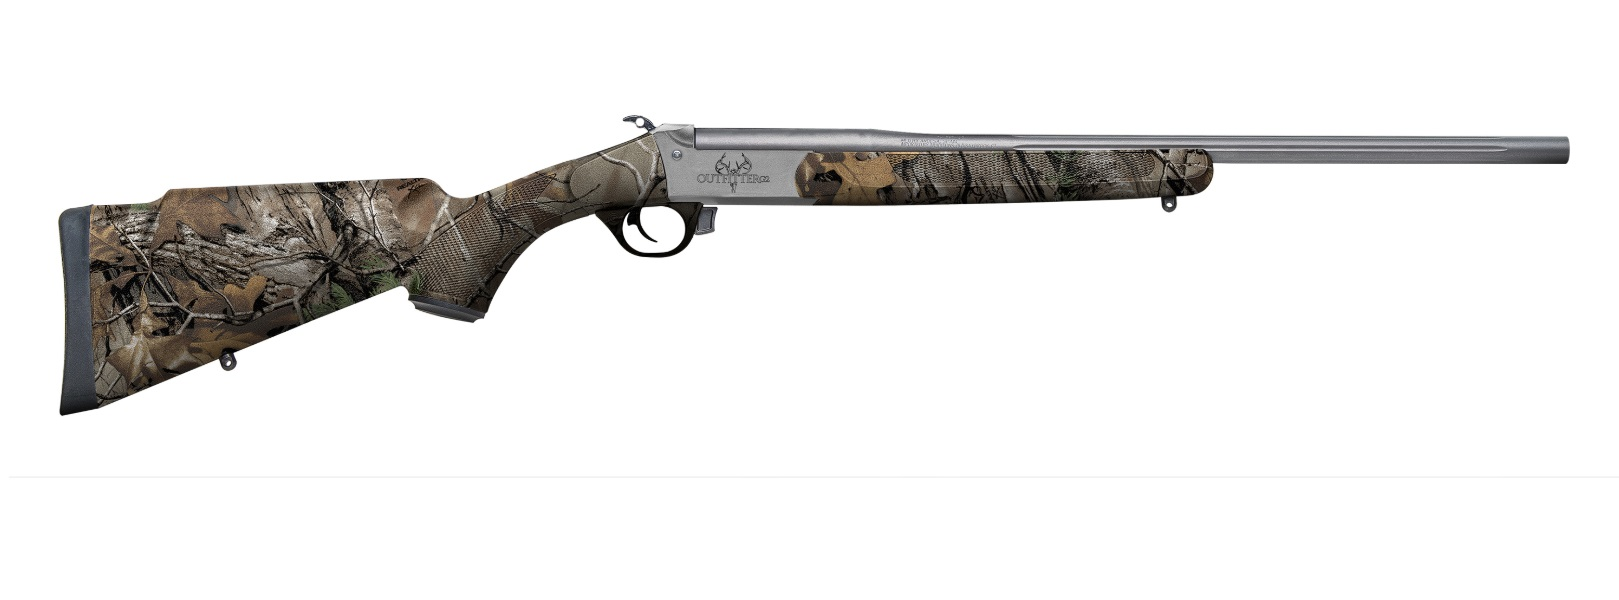 Traditions OUTFITTER G2 44 MAGNUM | 44 SPECIAL